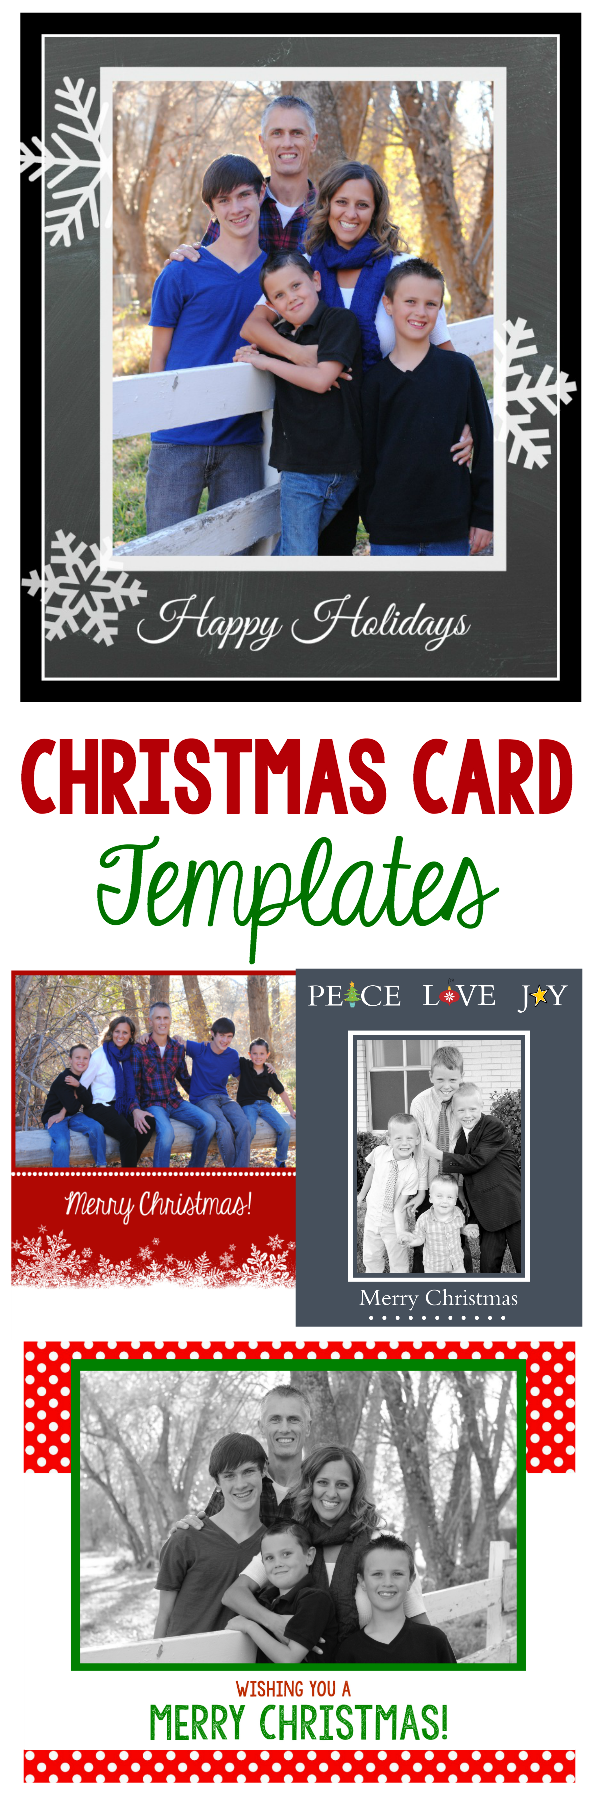 50 free holiday photo card templates moritz fine designs for Free complimentary cards templates